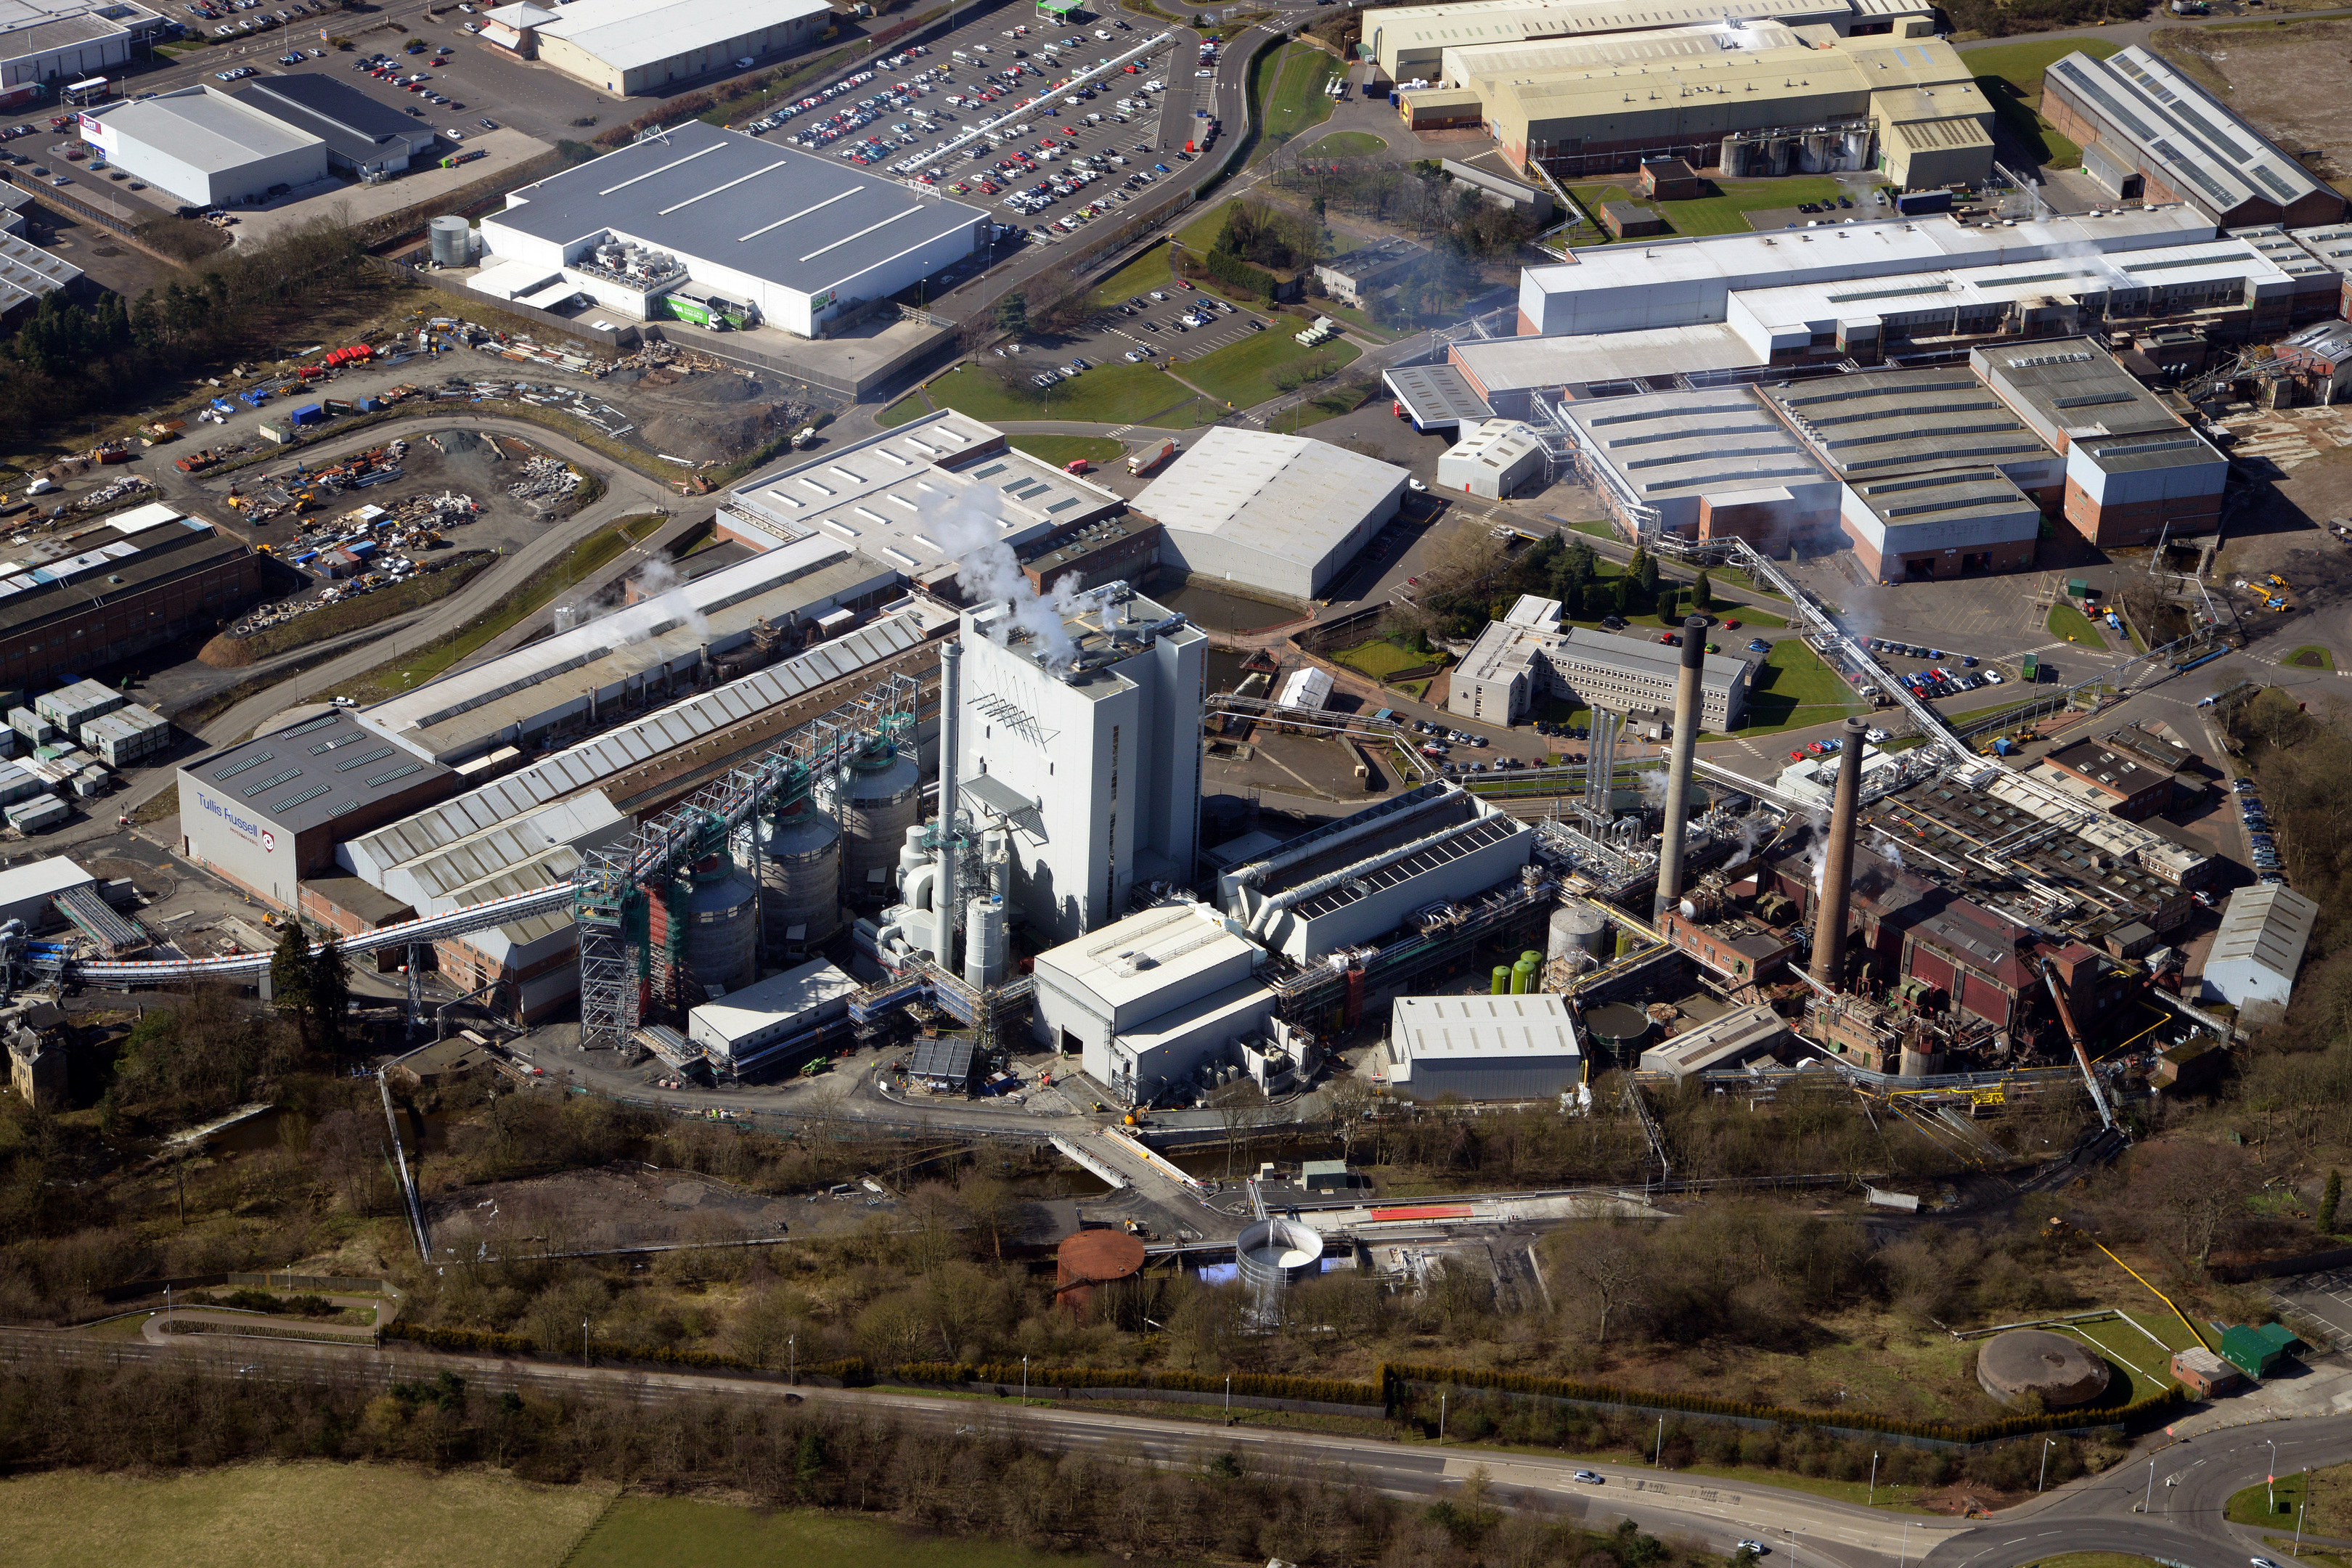 The biomass plant at Markinch.